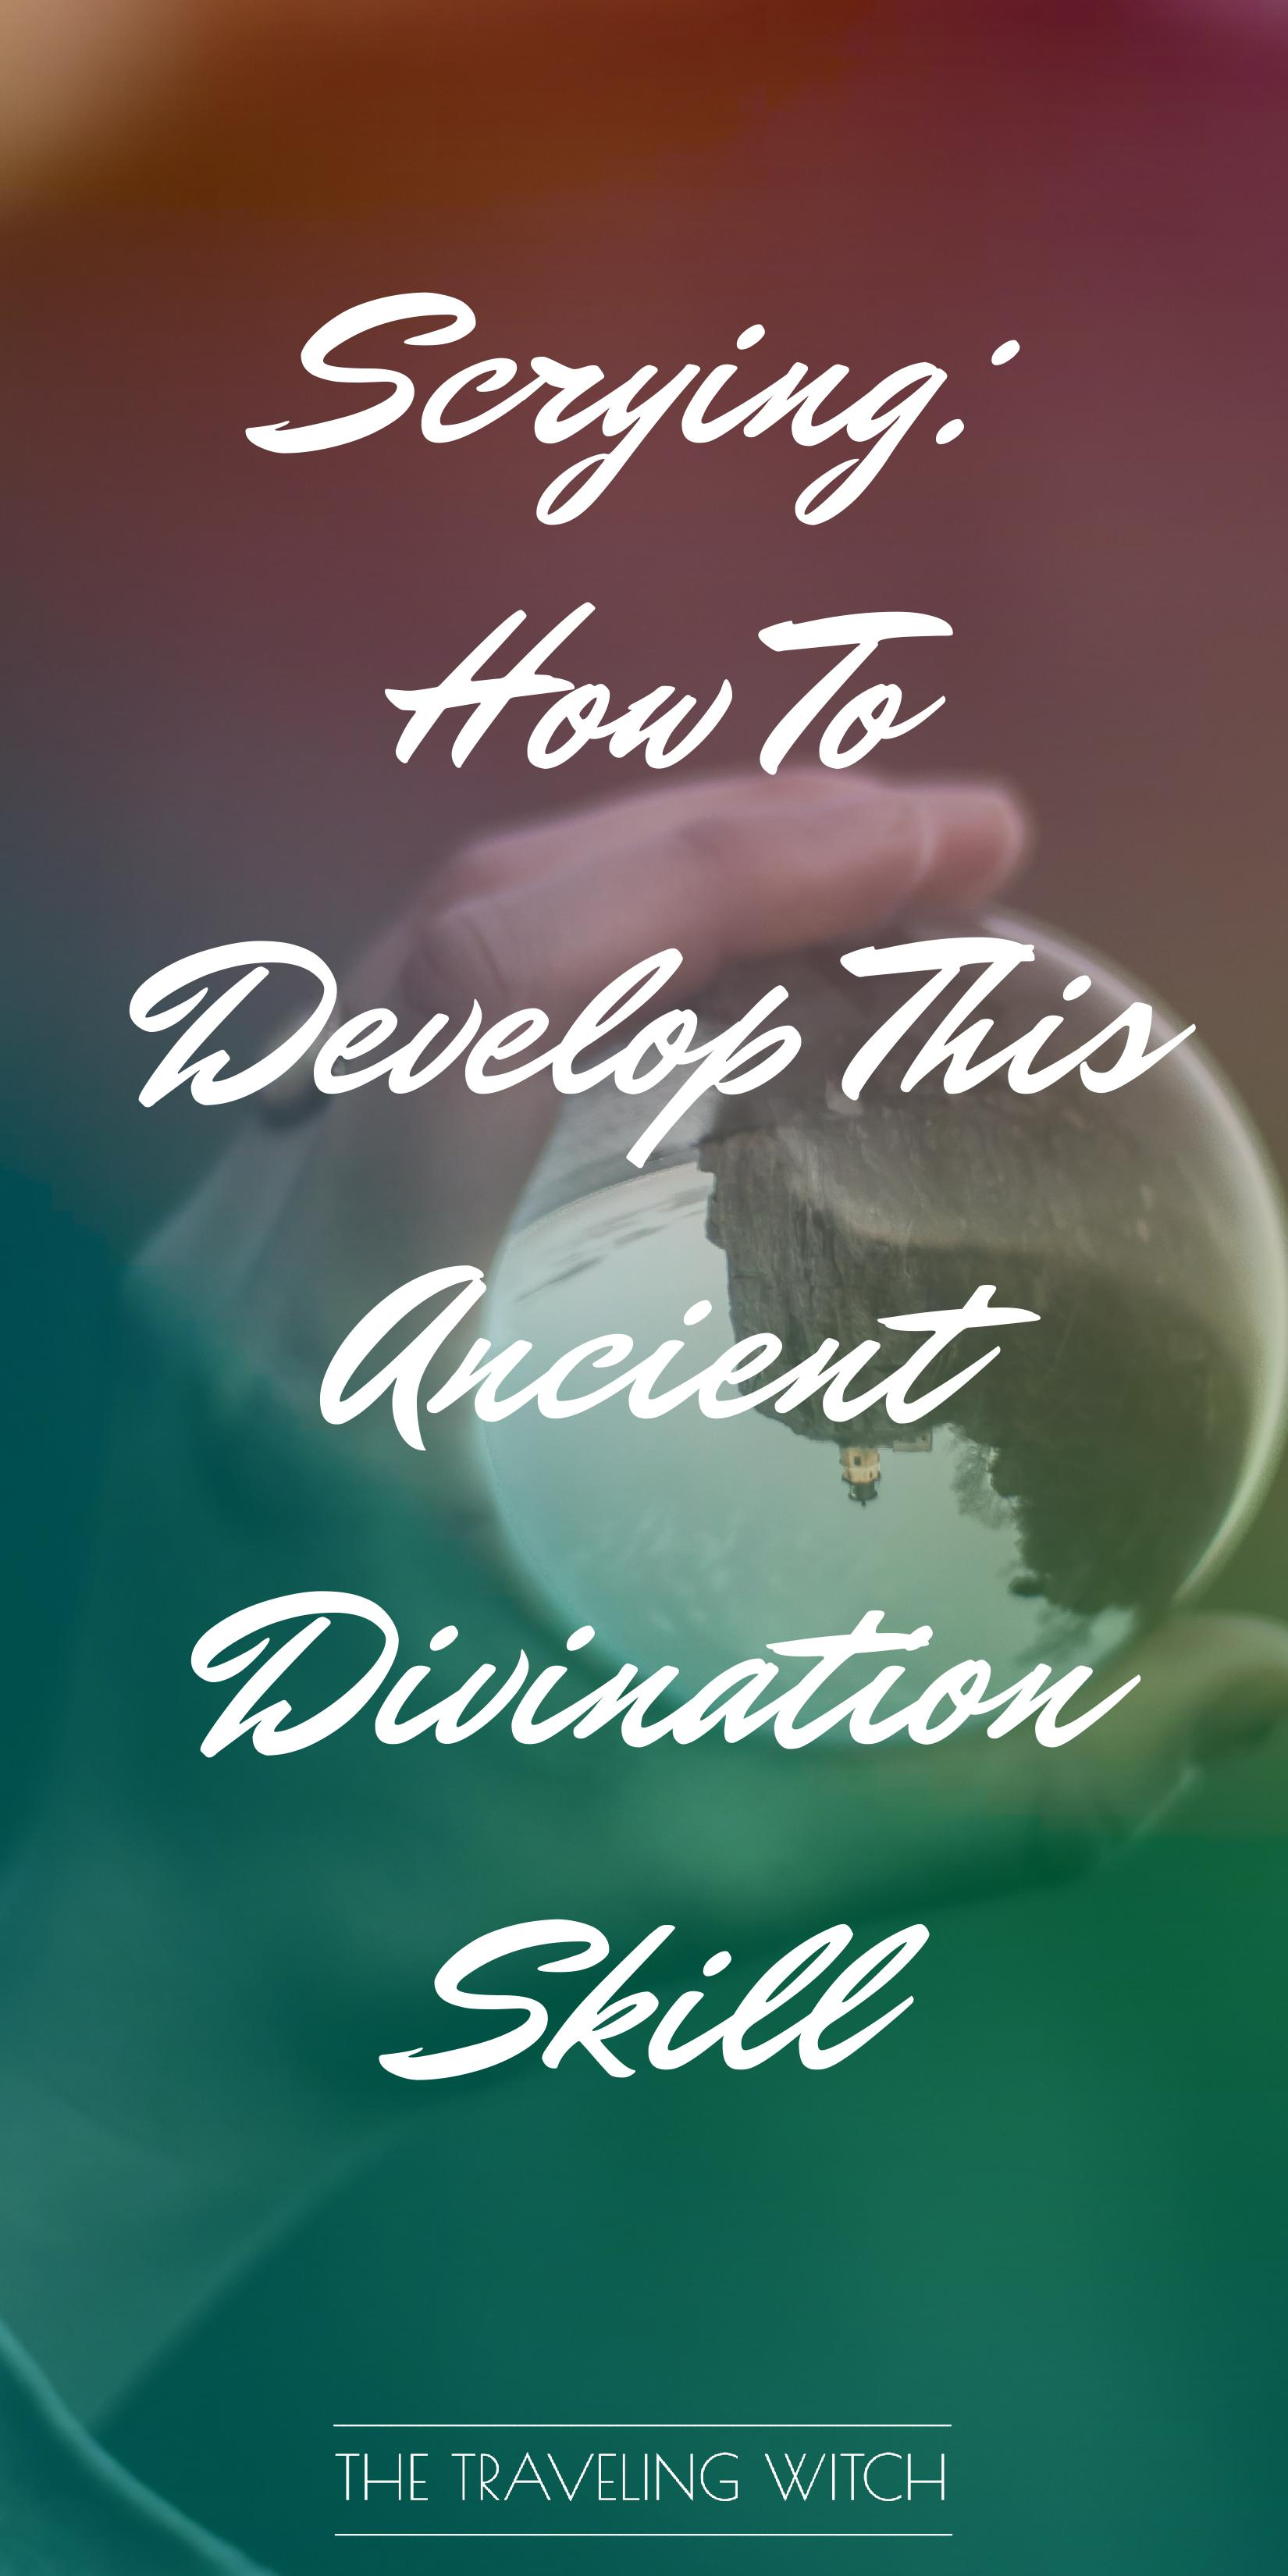 Scrying: How To Develop This Ancient Divination Skill by The Traveling Witch